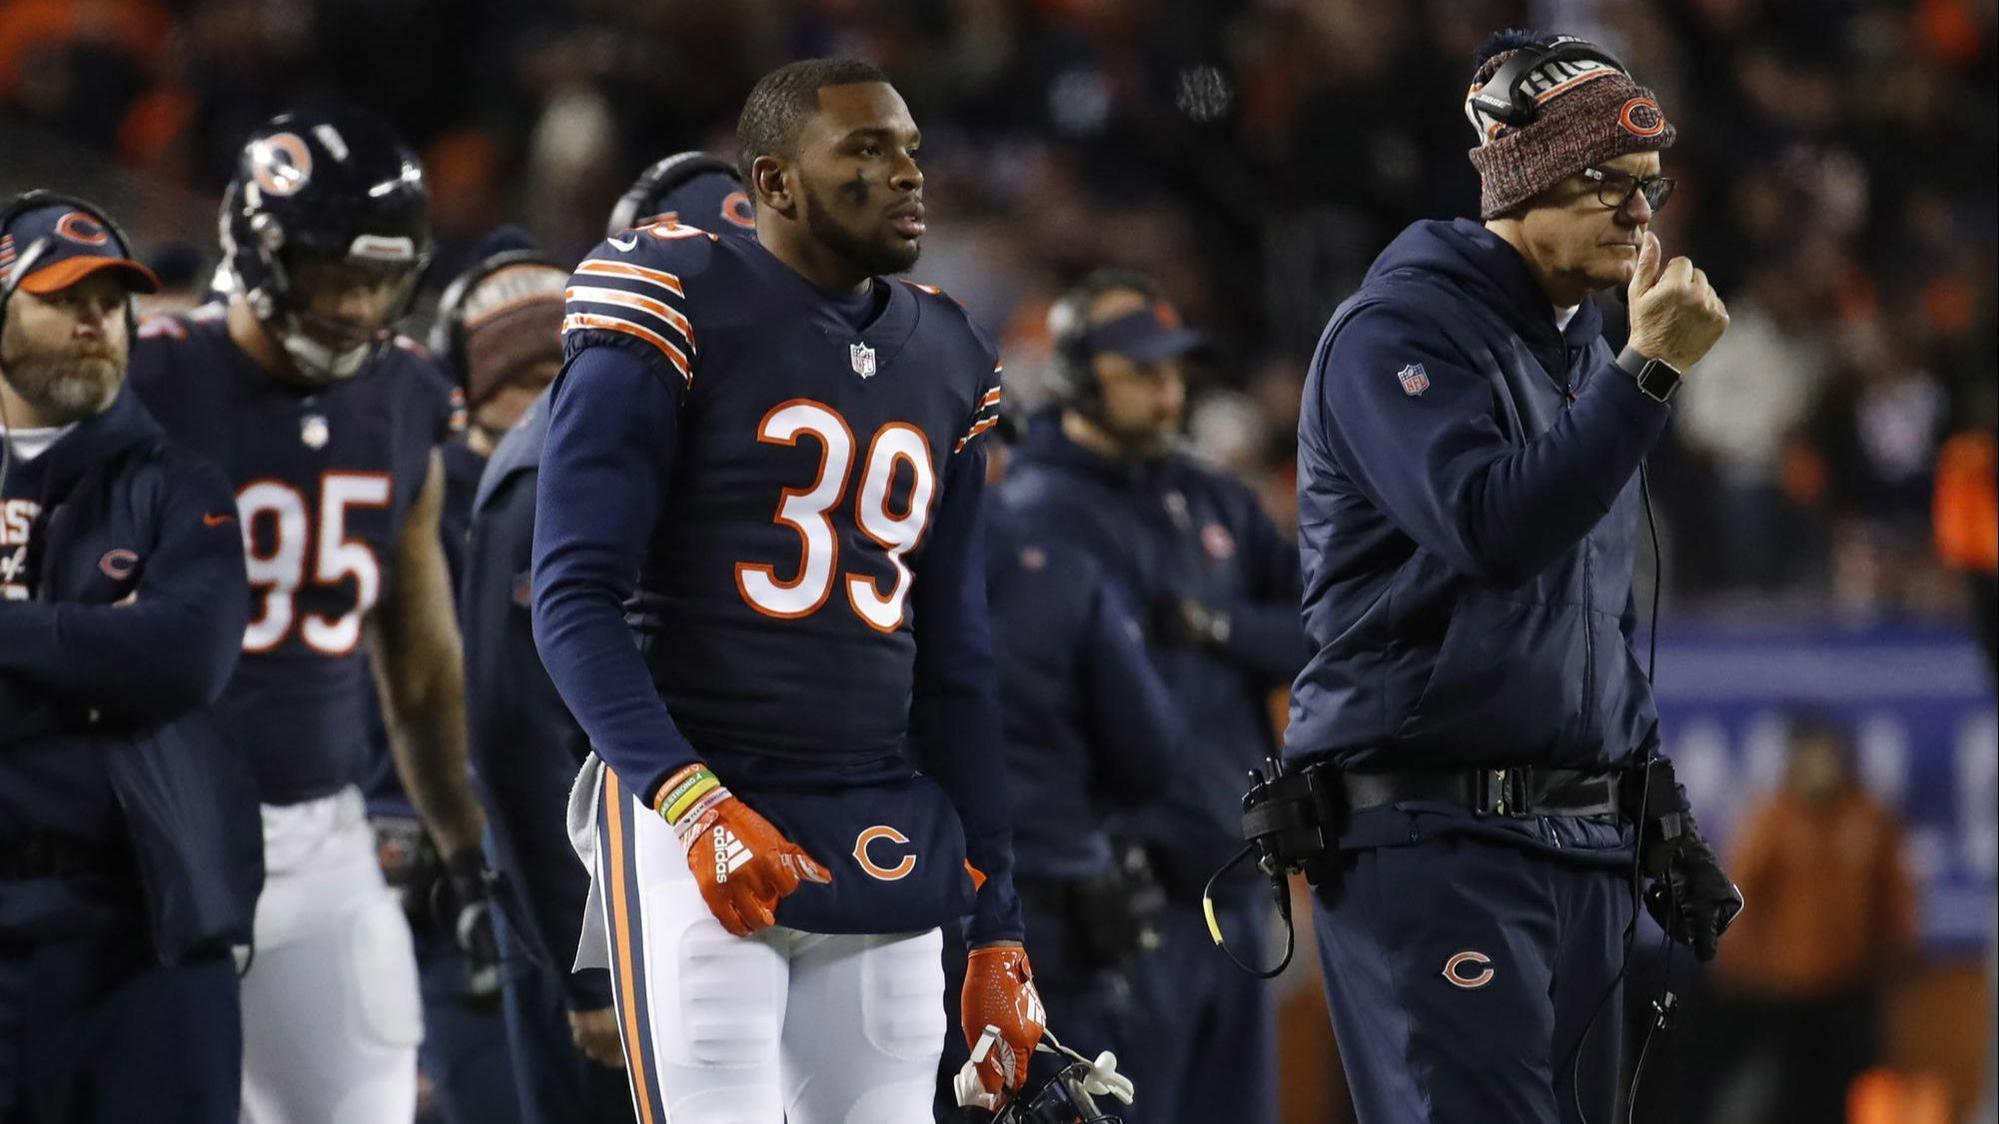 f1b8e75e352 All-Pro safety Eddie Jackson activated but doesn't play in Bears' playoff  loss to Eagles